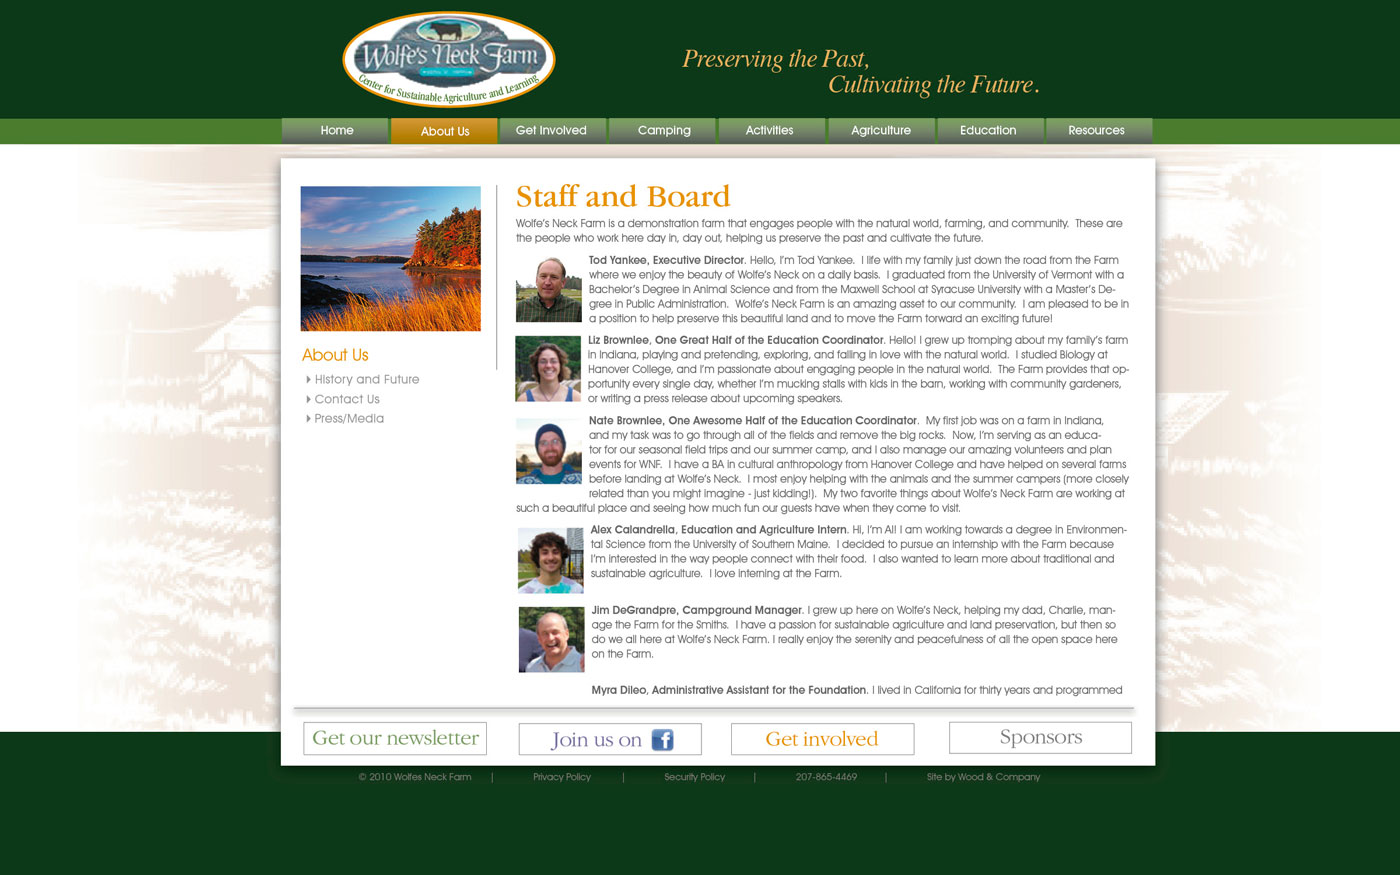 Wolfes Neck Farm website staff page